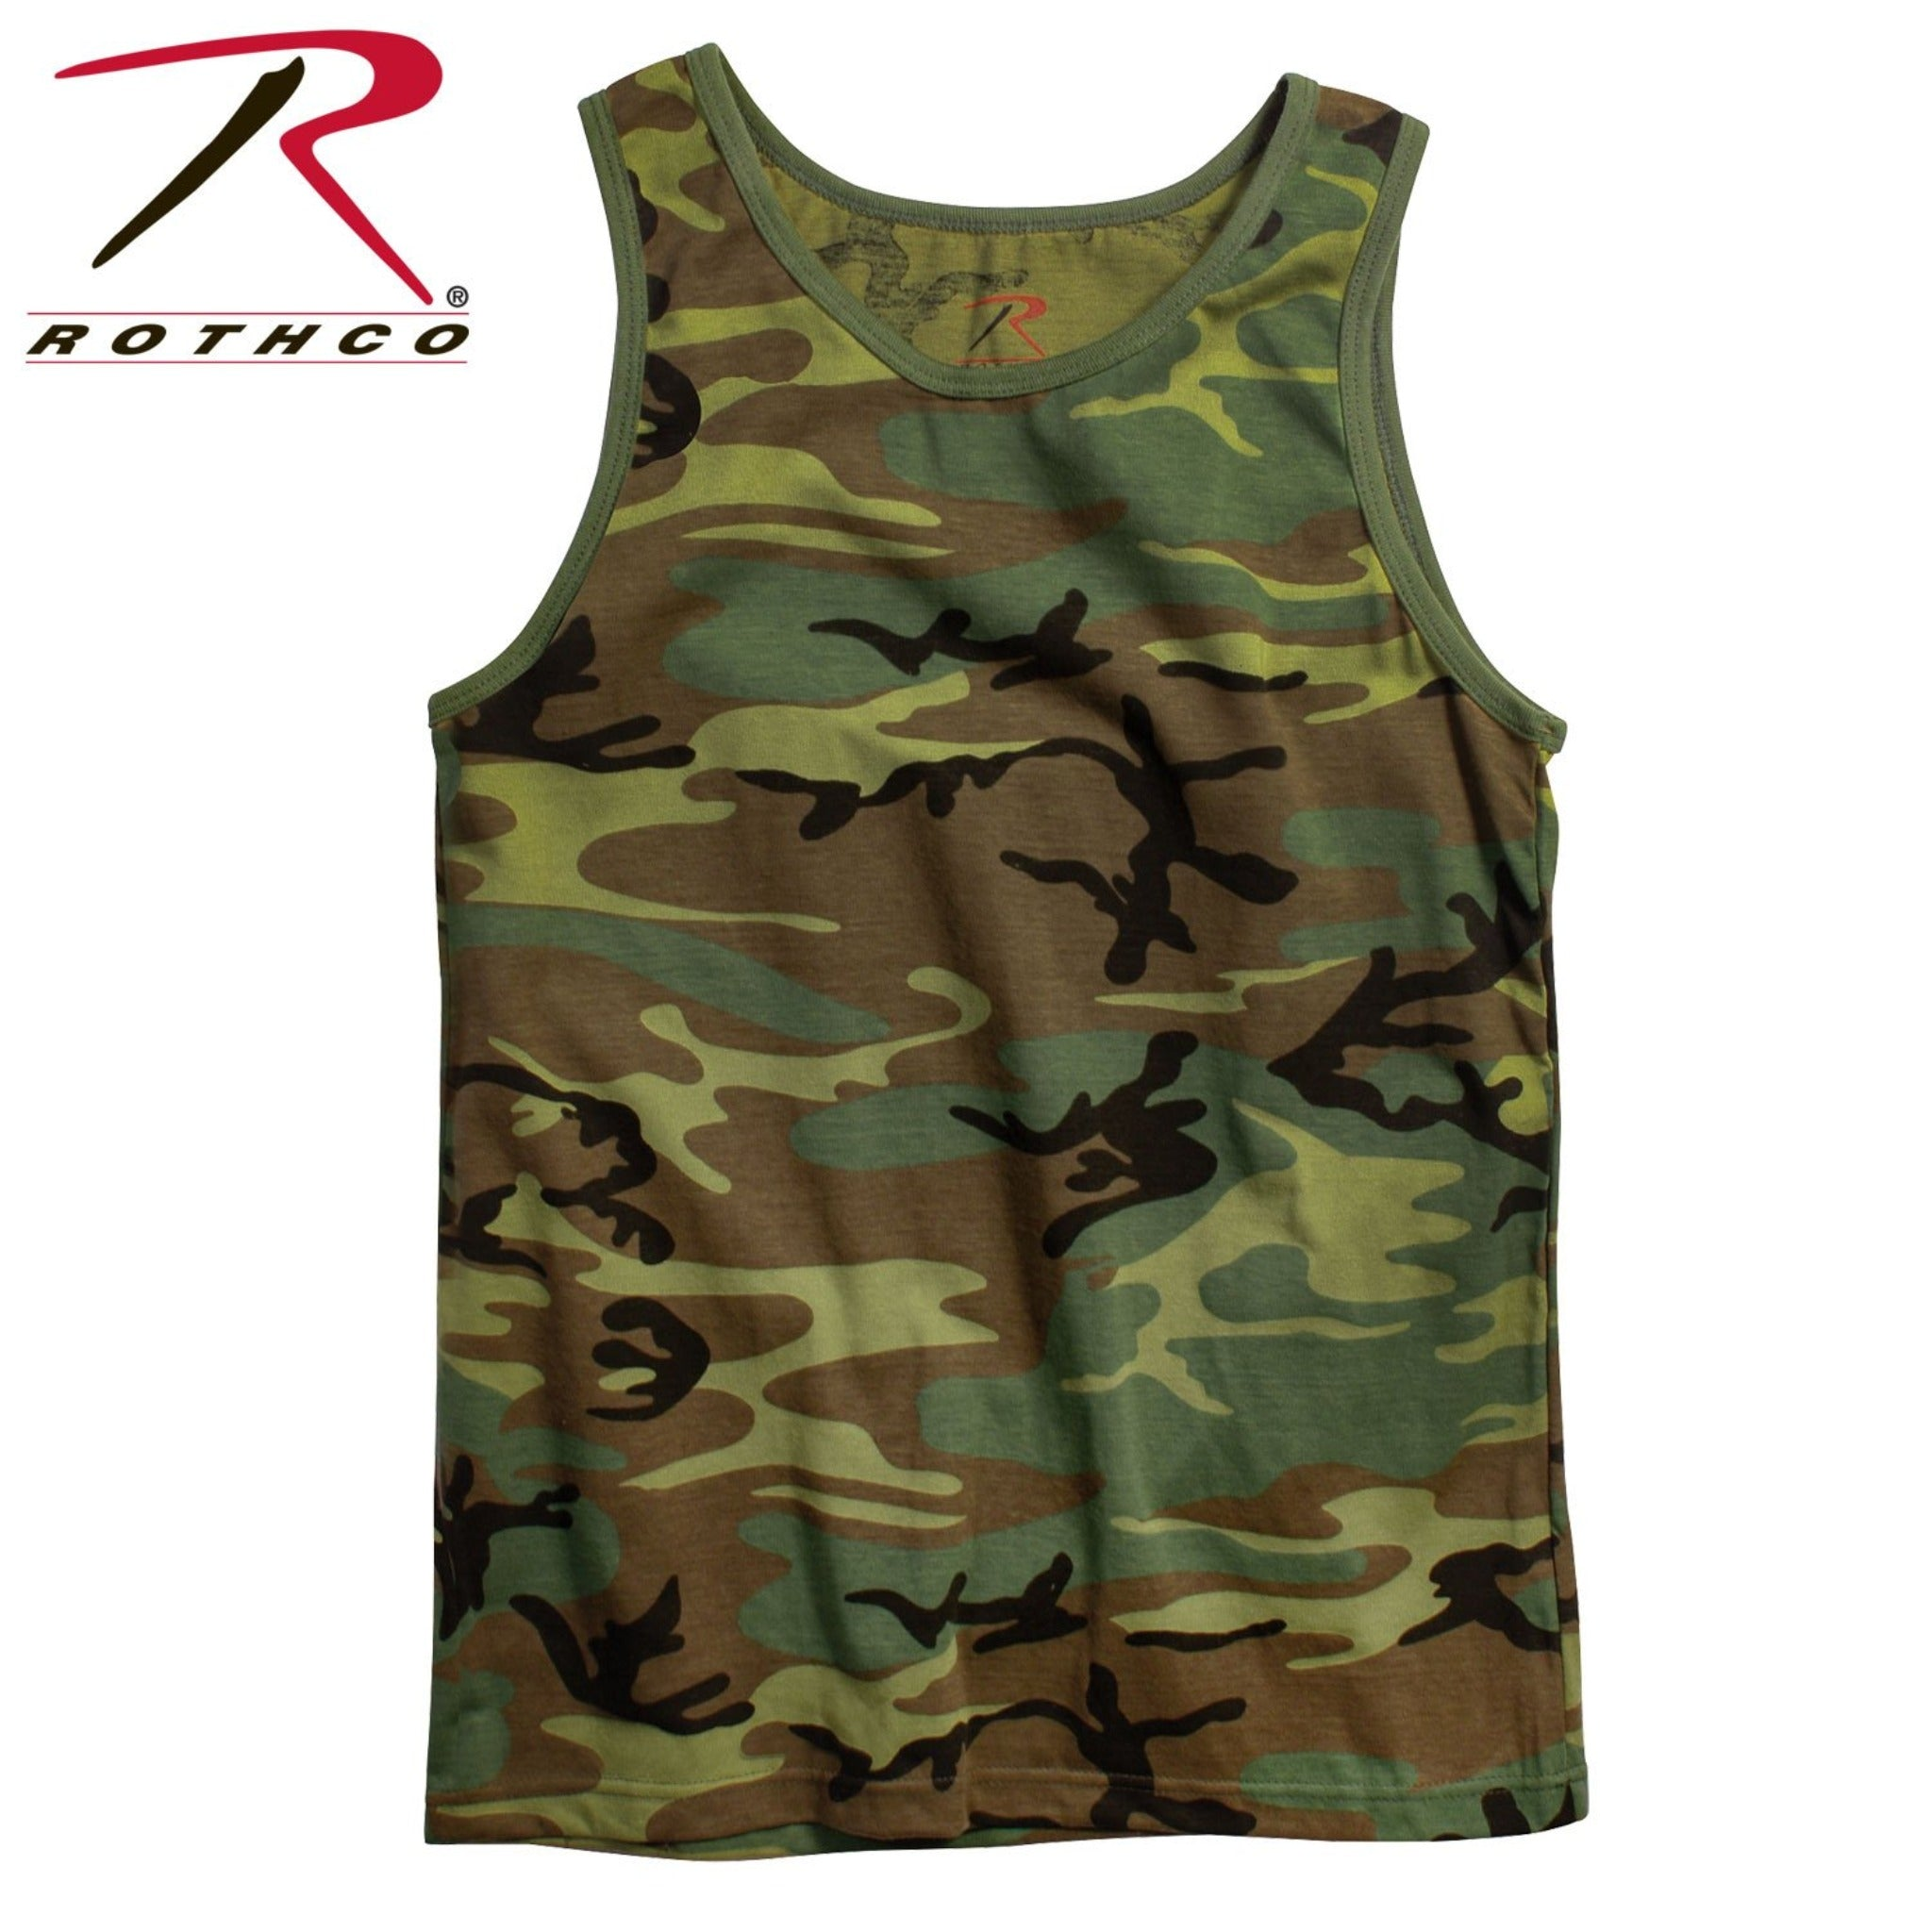 Men's brown, green and black camo tank top from Rothco.